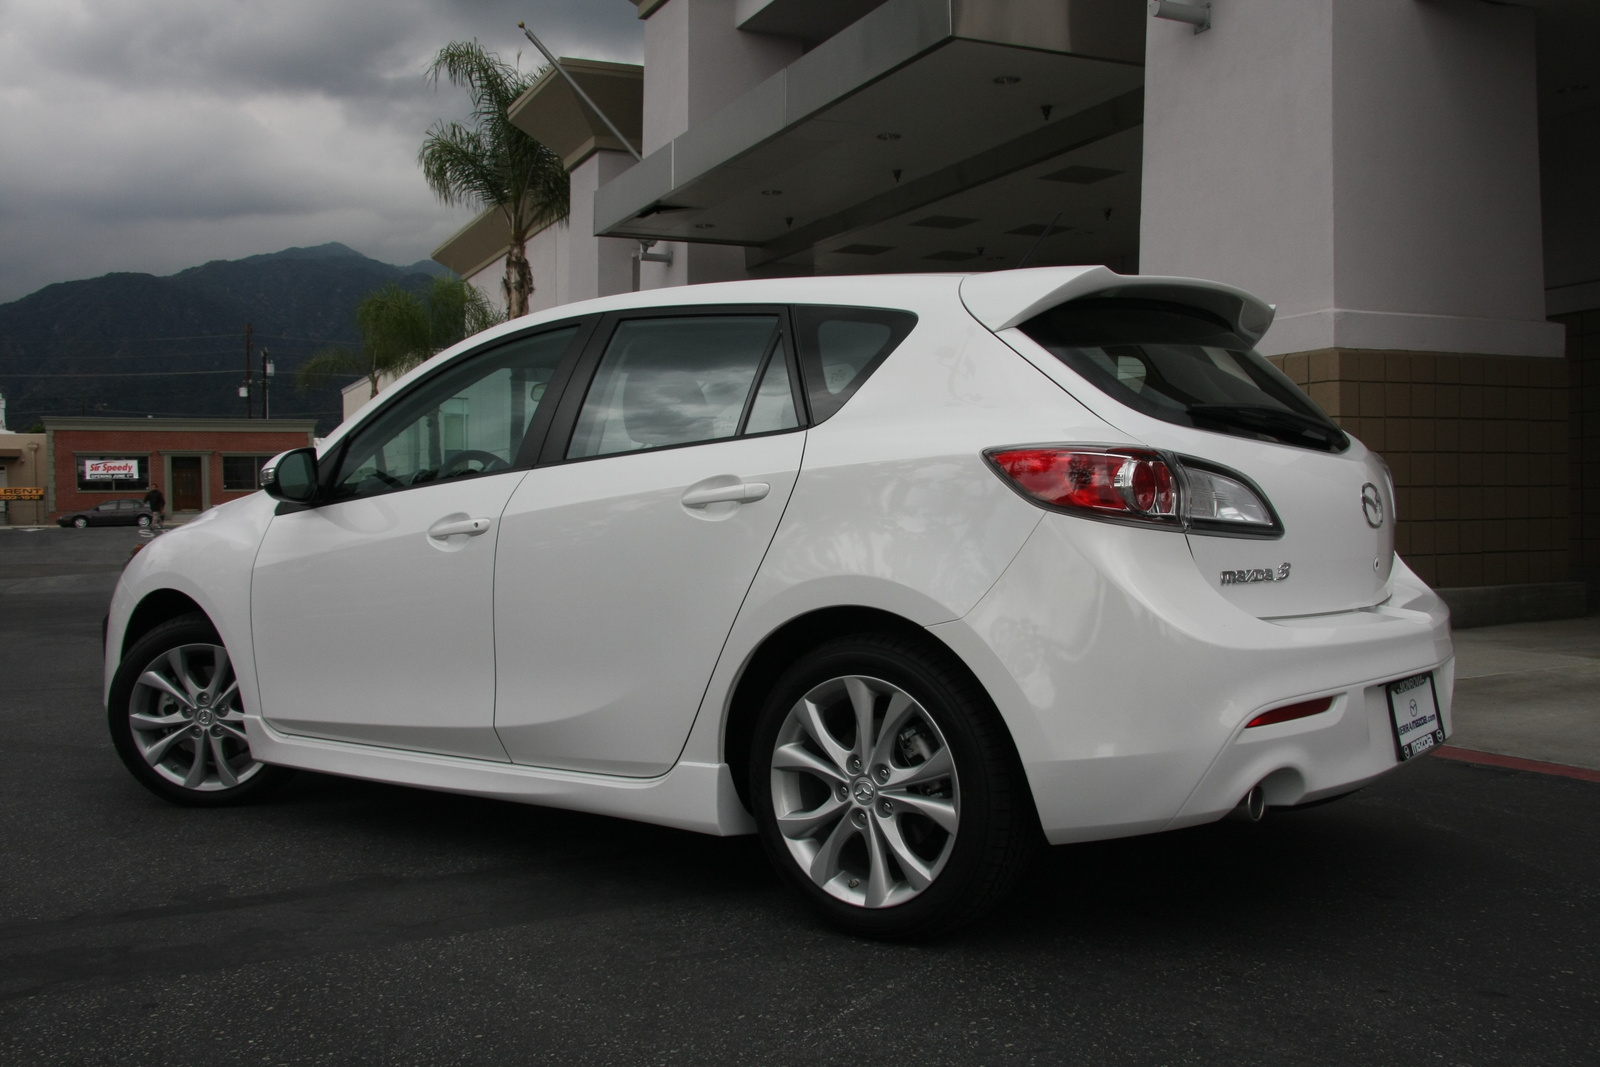 Image Gallery Mazda 3 2010 Coupe